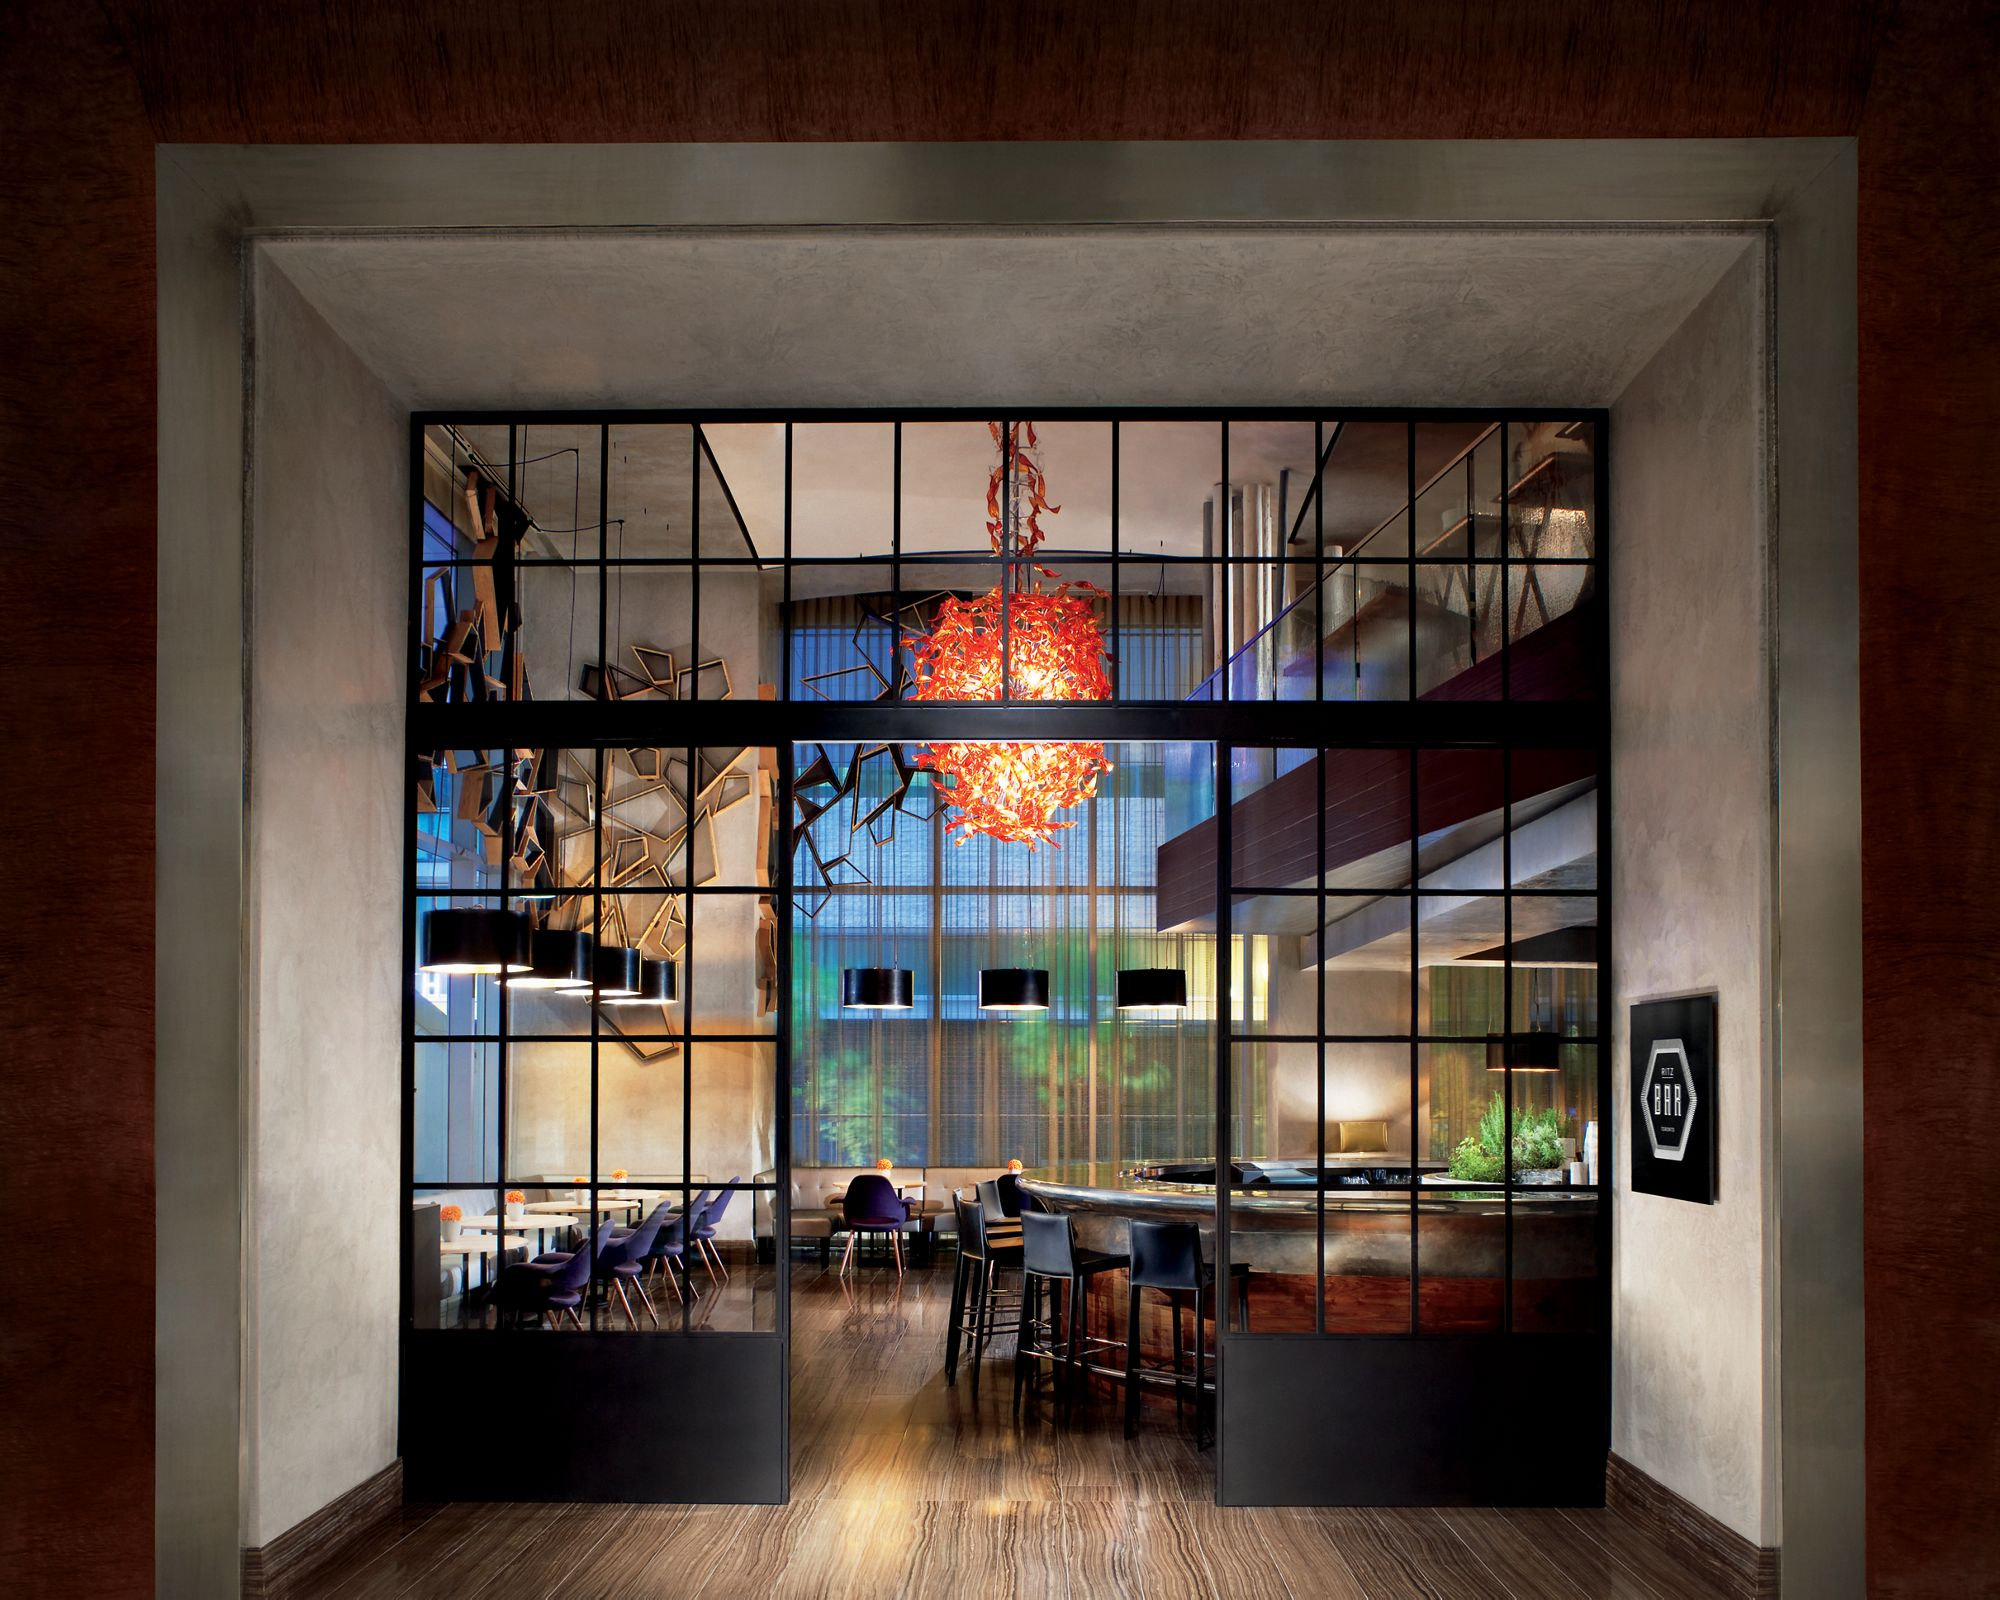 ck棋牌View through a glass wall of a two-level dining room with a bar and sculptural chandelier